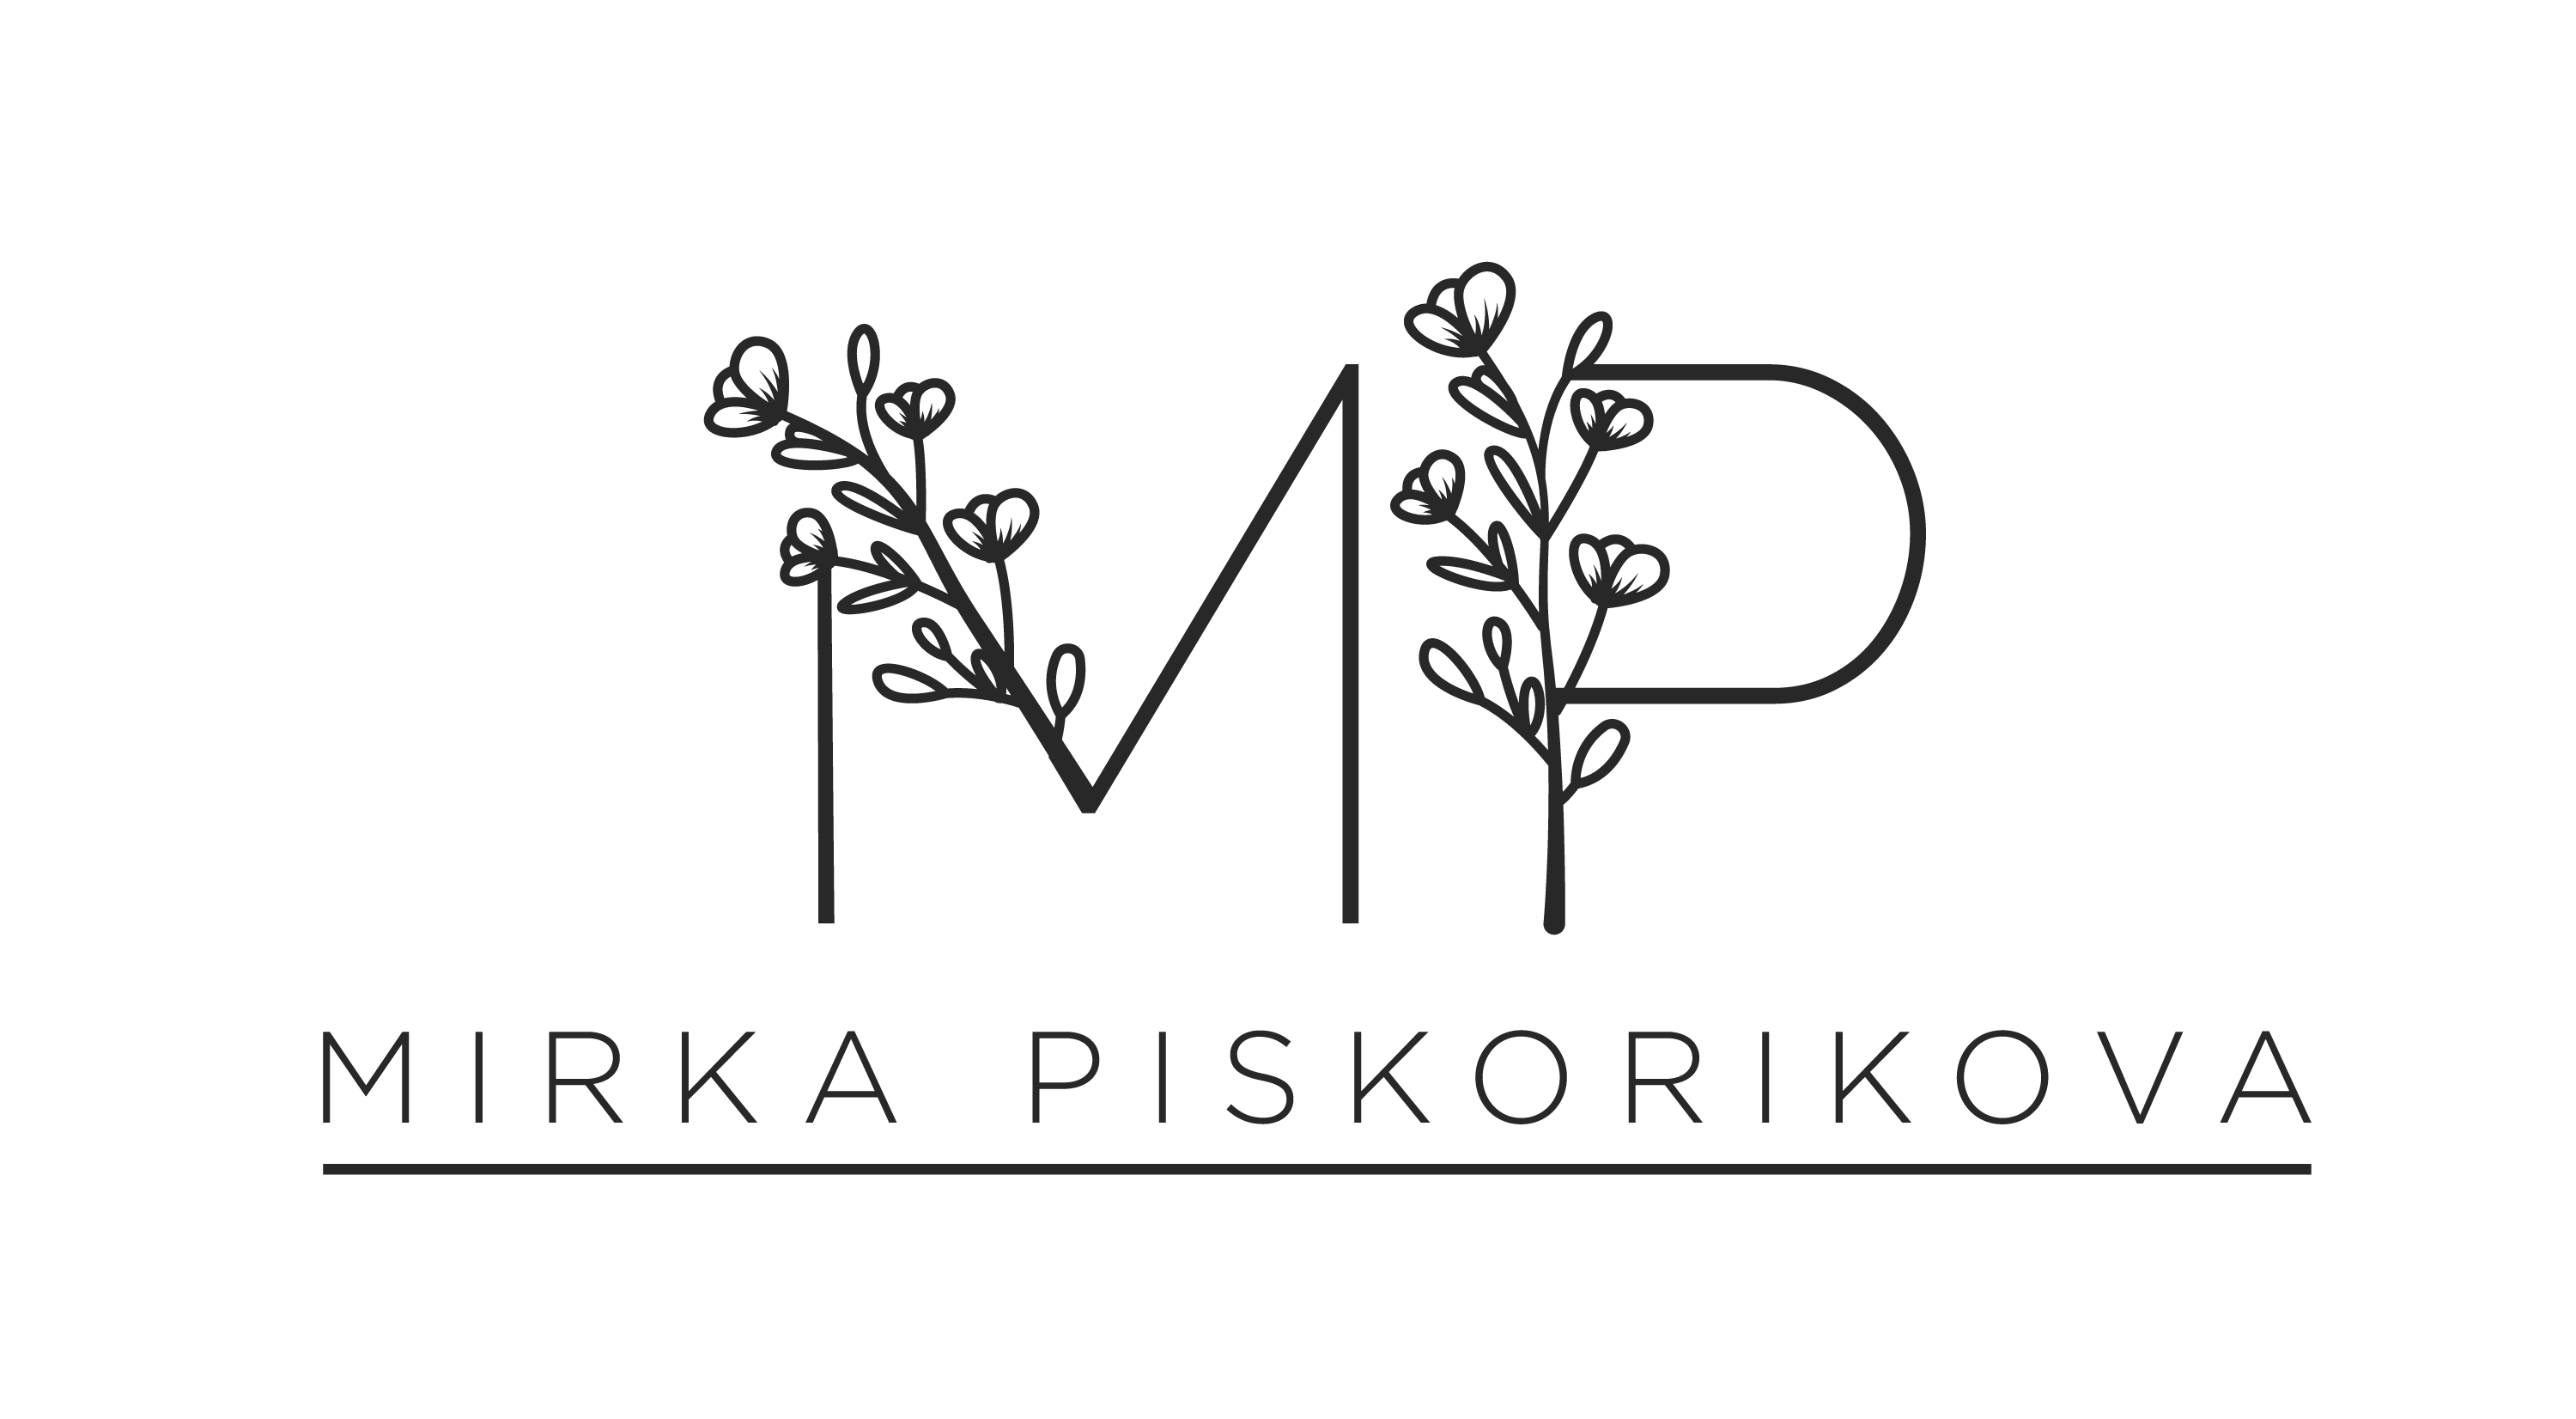 Mirka Piskorikova | Regulatory Consultancy For Feed & Food Additives, Novel Food, Veterinary Medicinal Products & Cosmetics